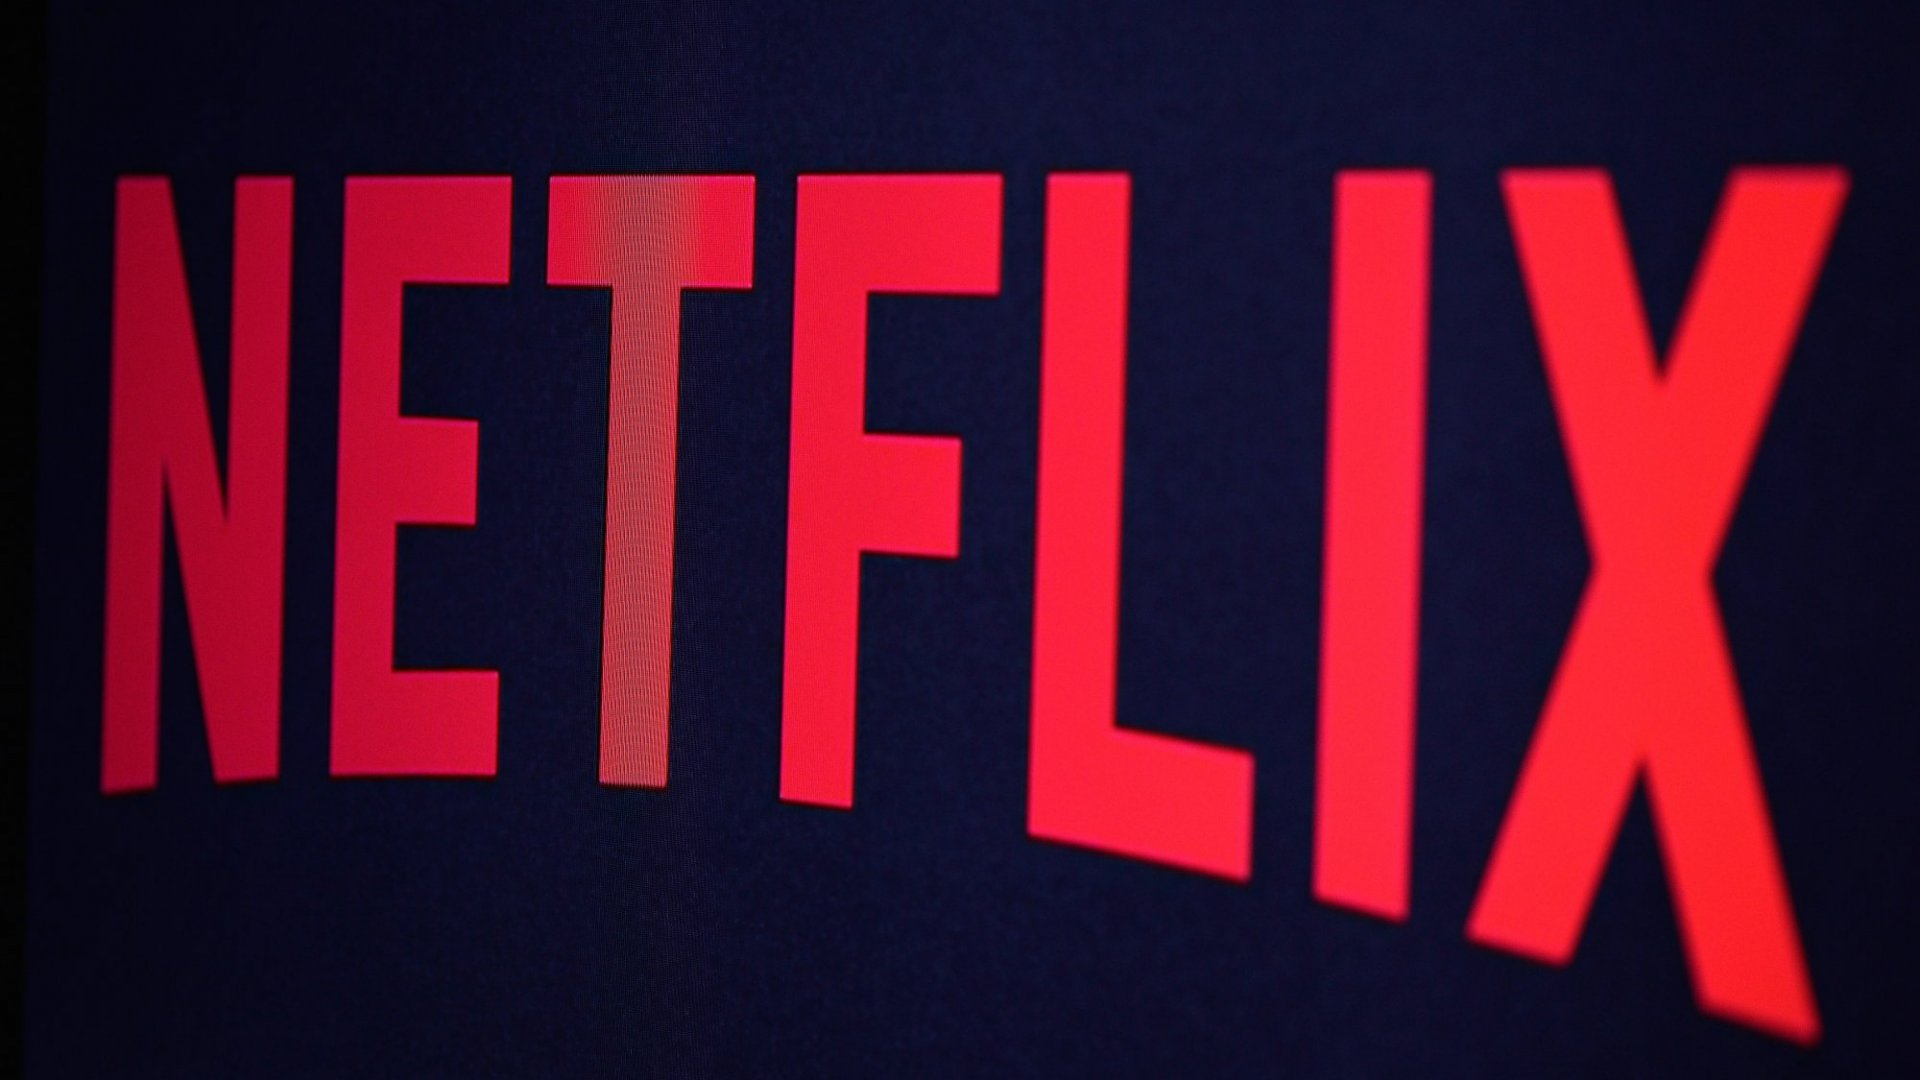 Picking What to Watch on Netflix Is a Drag. So Netflix Just Launched a Way to Narrow Down Your Options